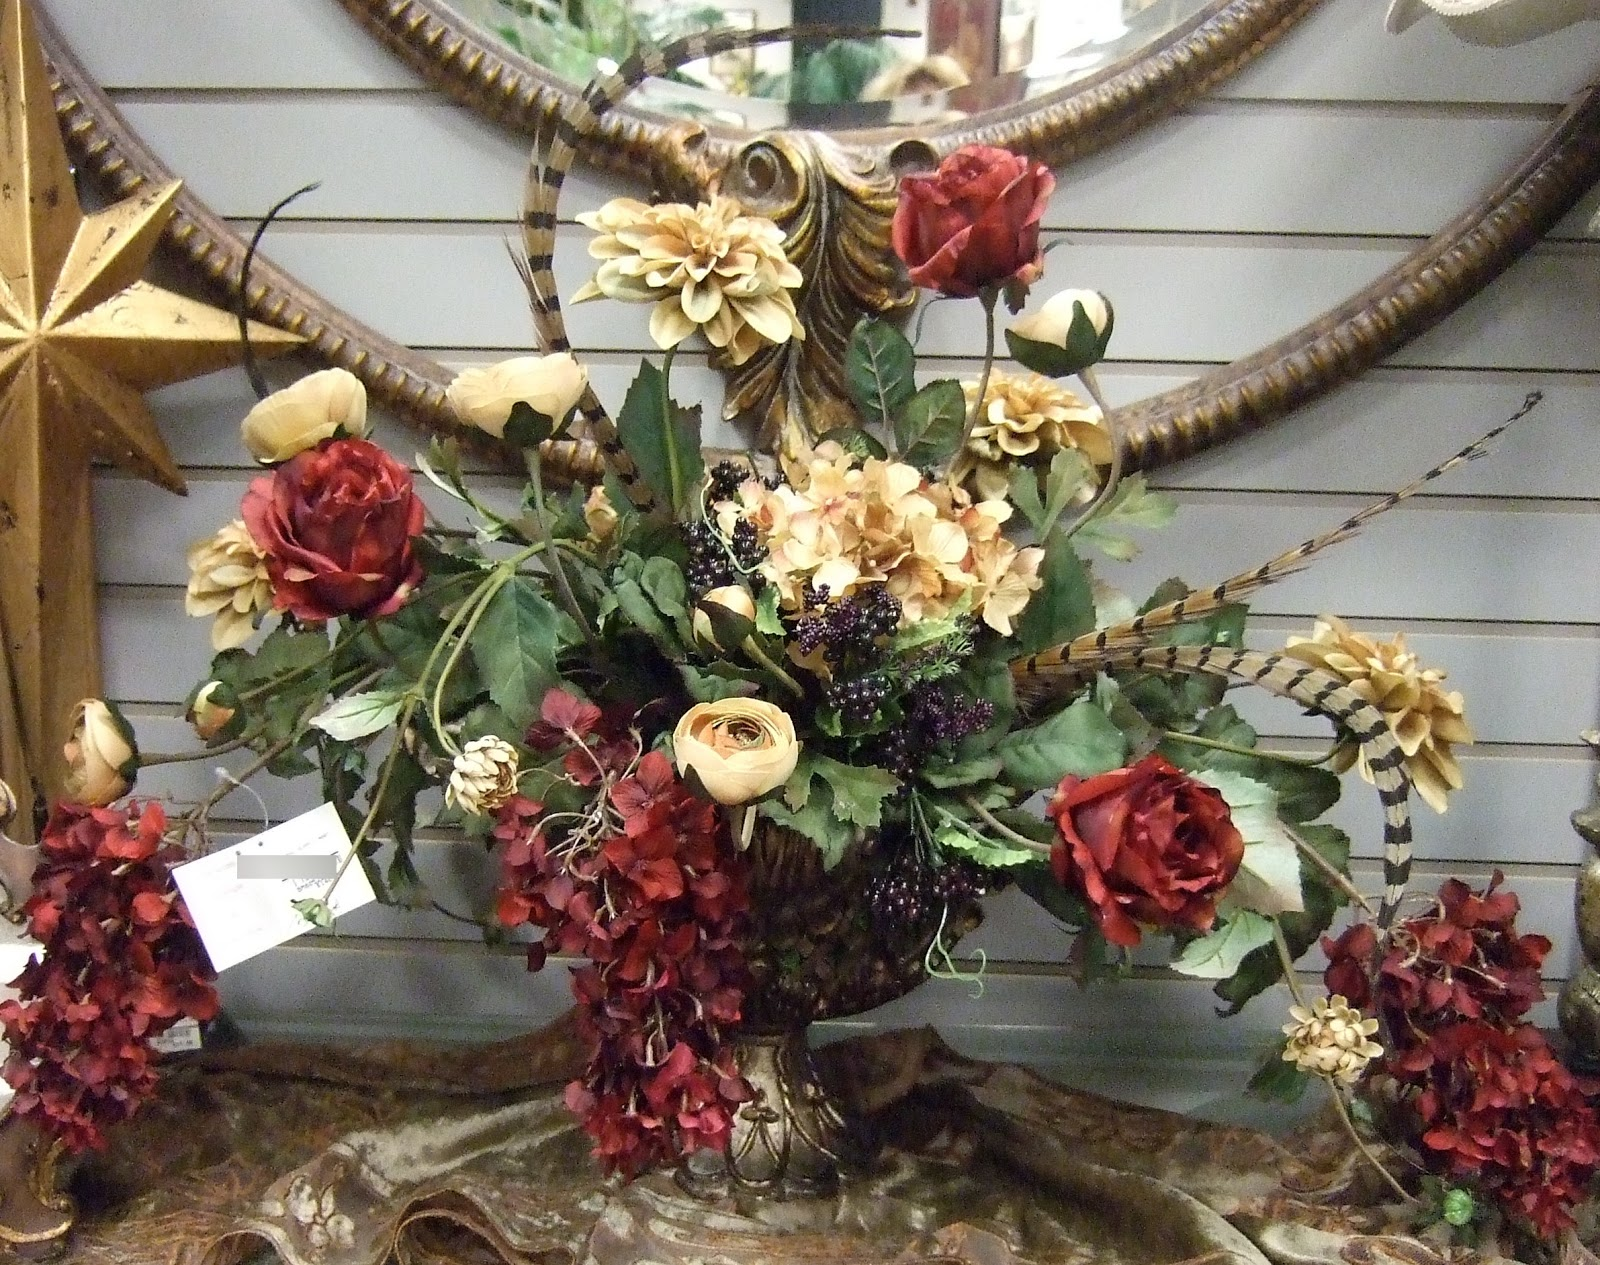 Ana silk flowers brown sage and burgundy